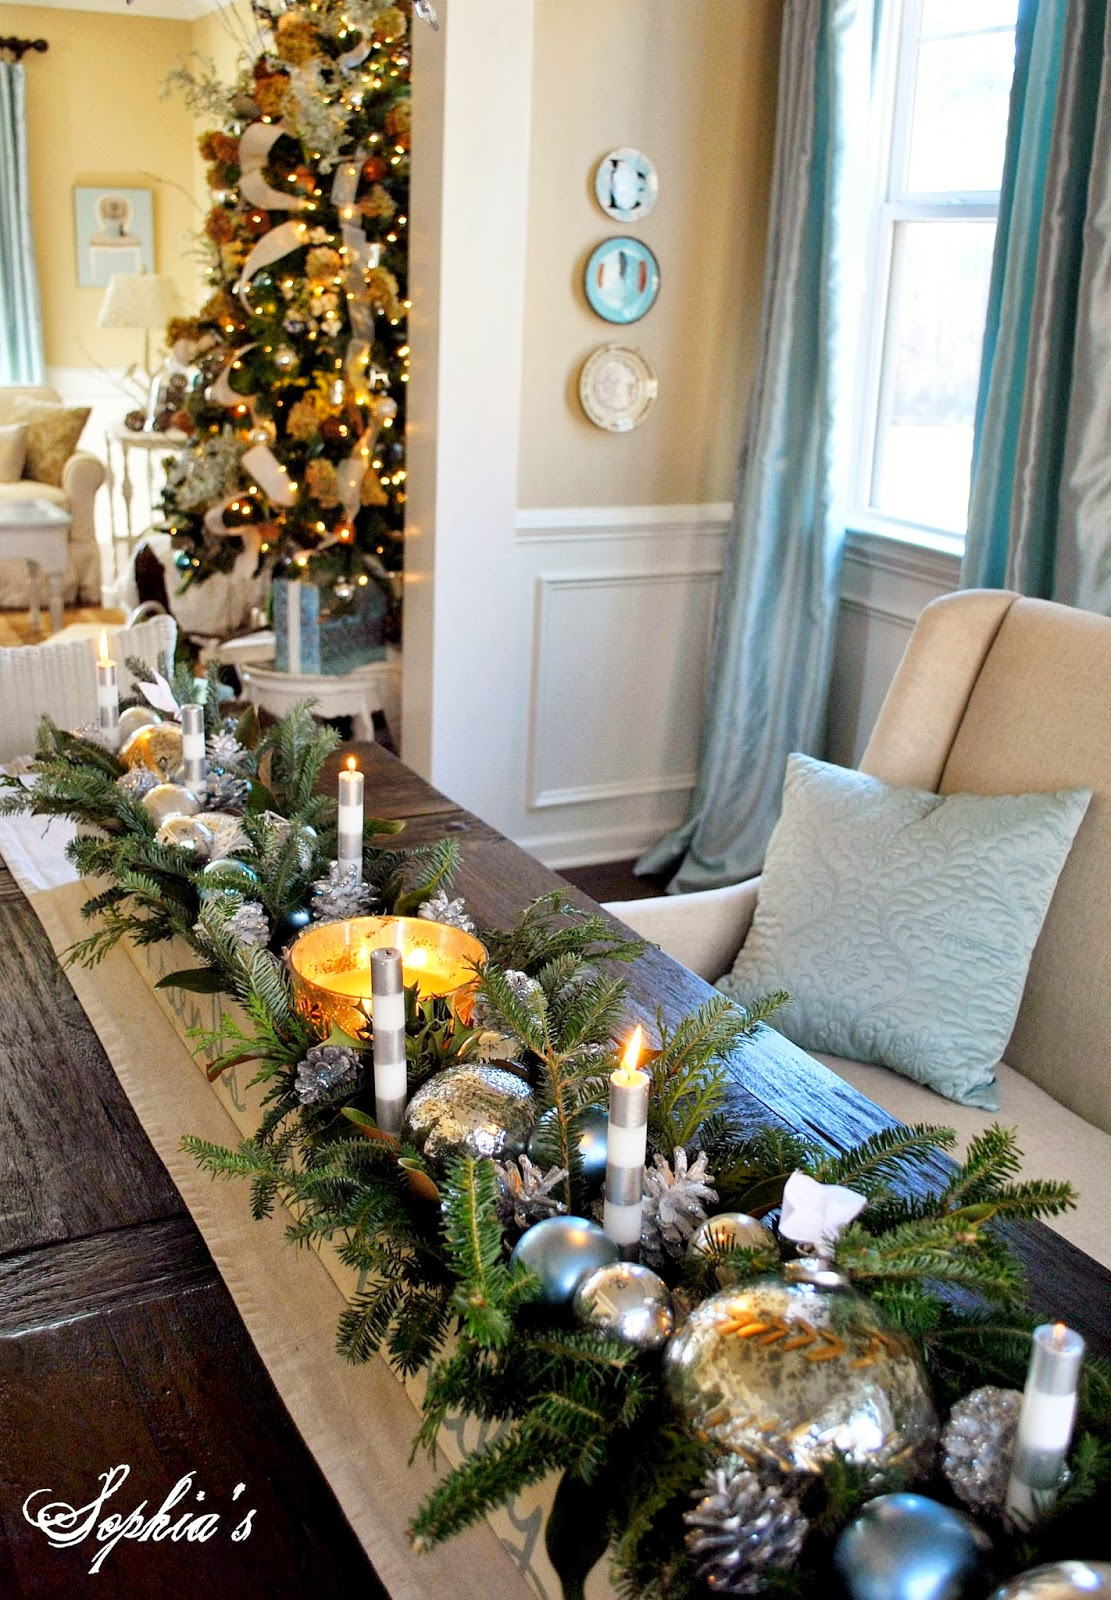 Decorating With Natural Elements Highlights Of Christmas Pasts